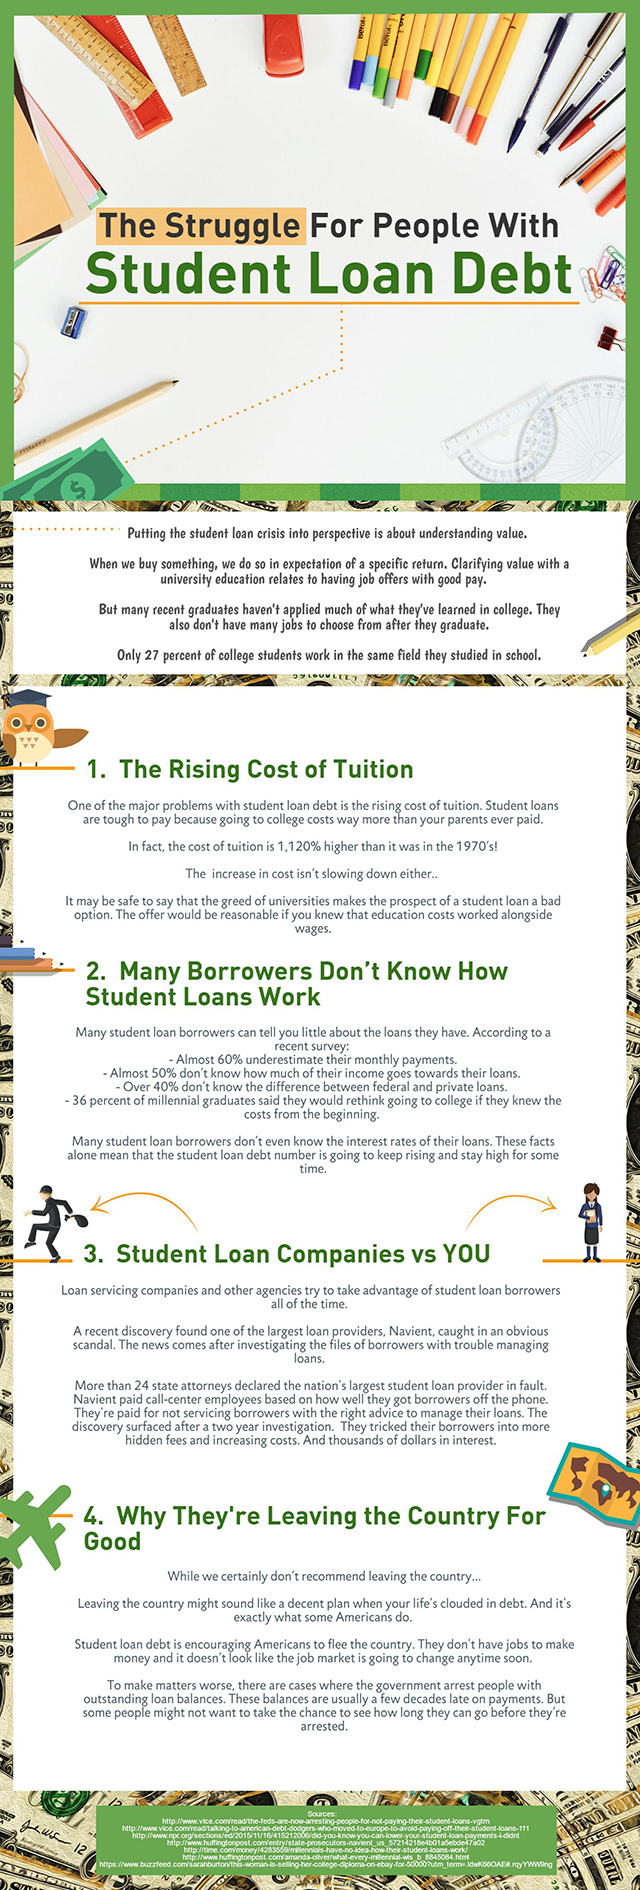 The Struggle For People With Student Loan Debt - Infographic